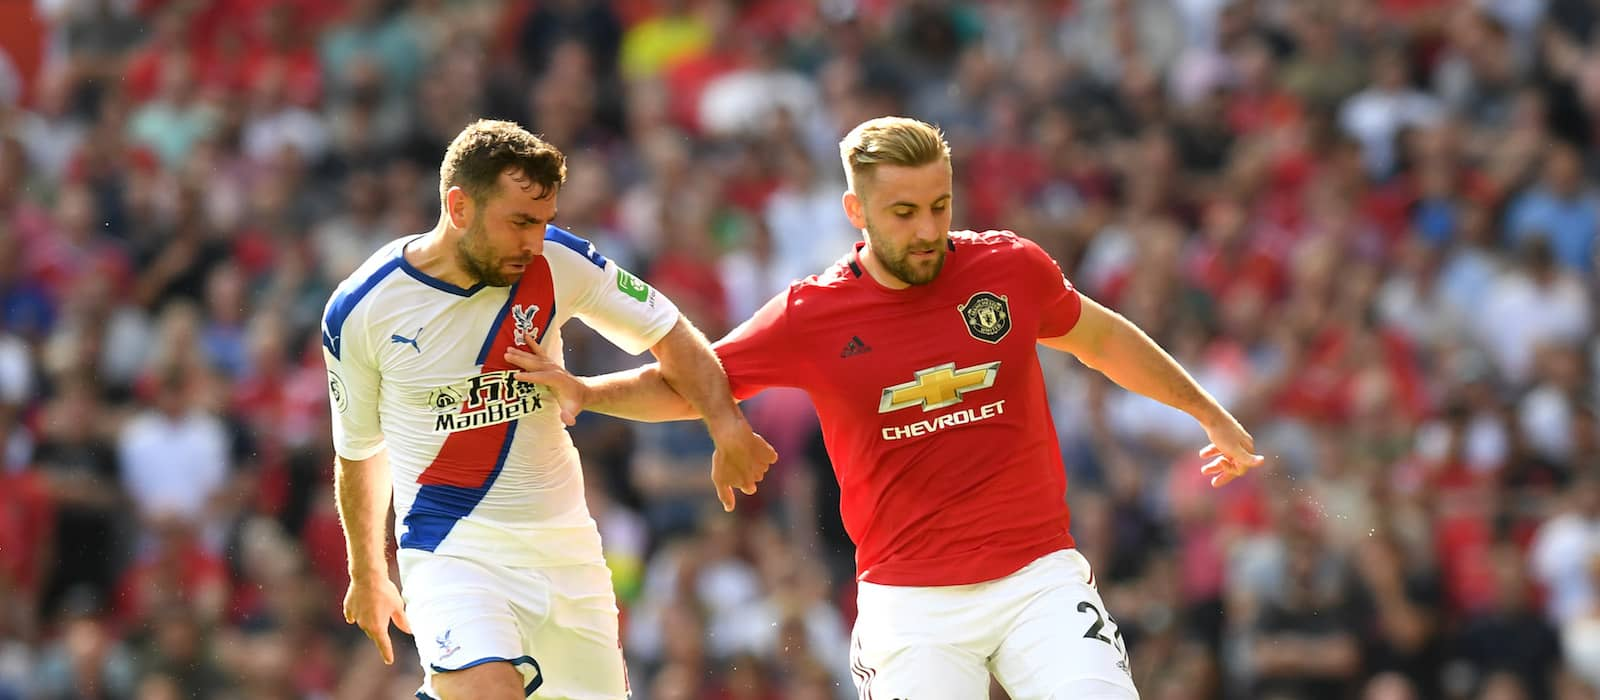 Manchester United vs. Liverpool: Potential XI with Paul Pogba and Luke Shaw